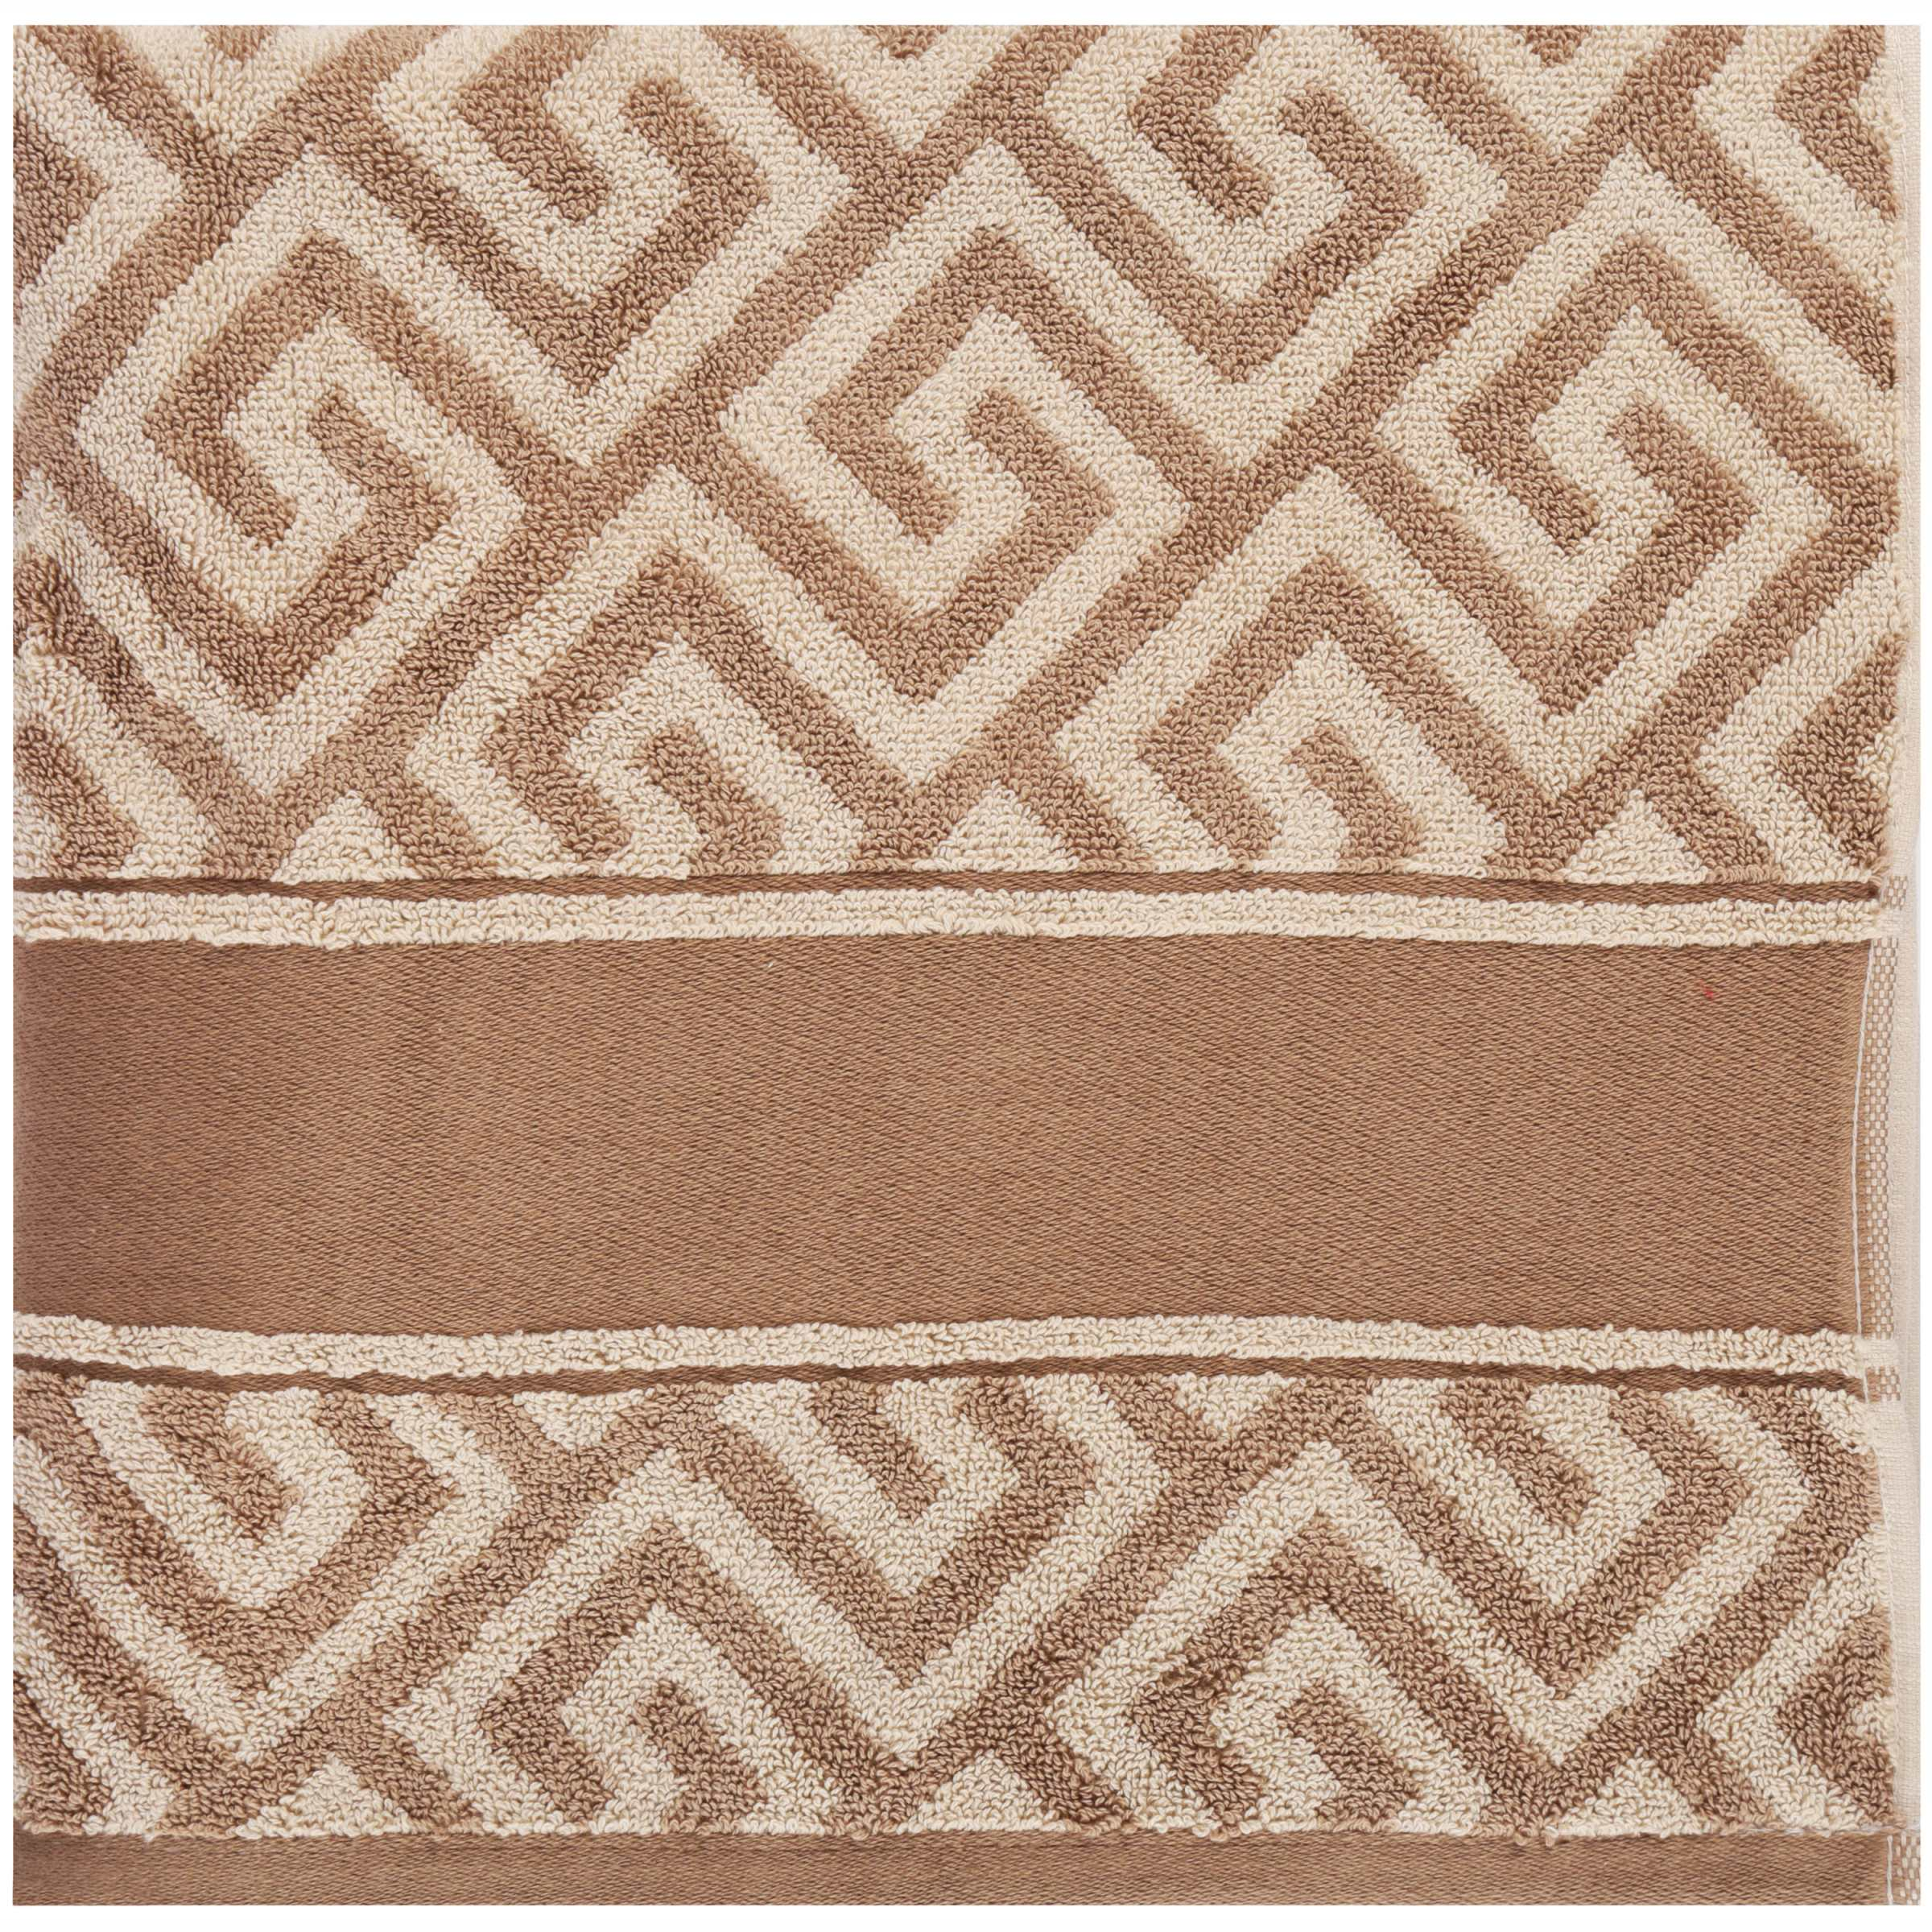 Better Homes & Gardens Greek Key Bath Towel by Wal-Mart Stores, Inc.